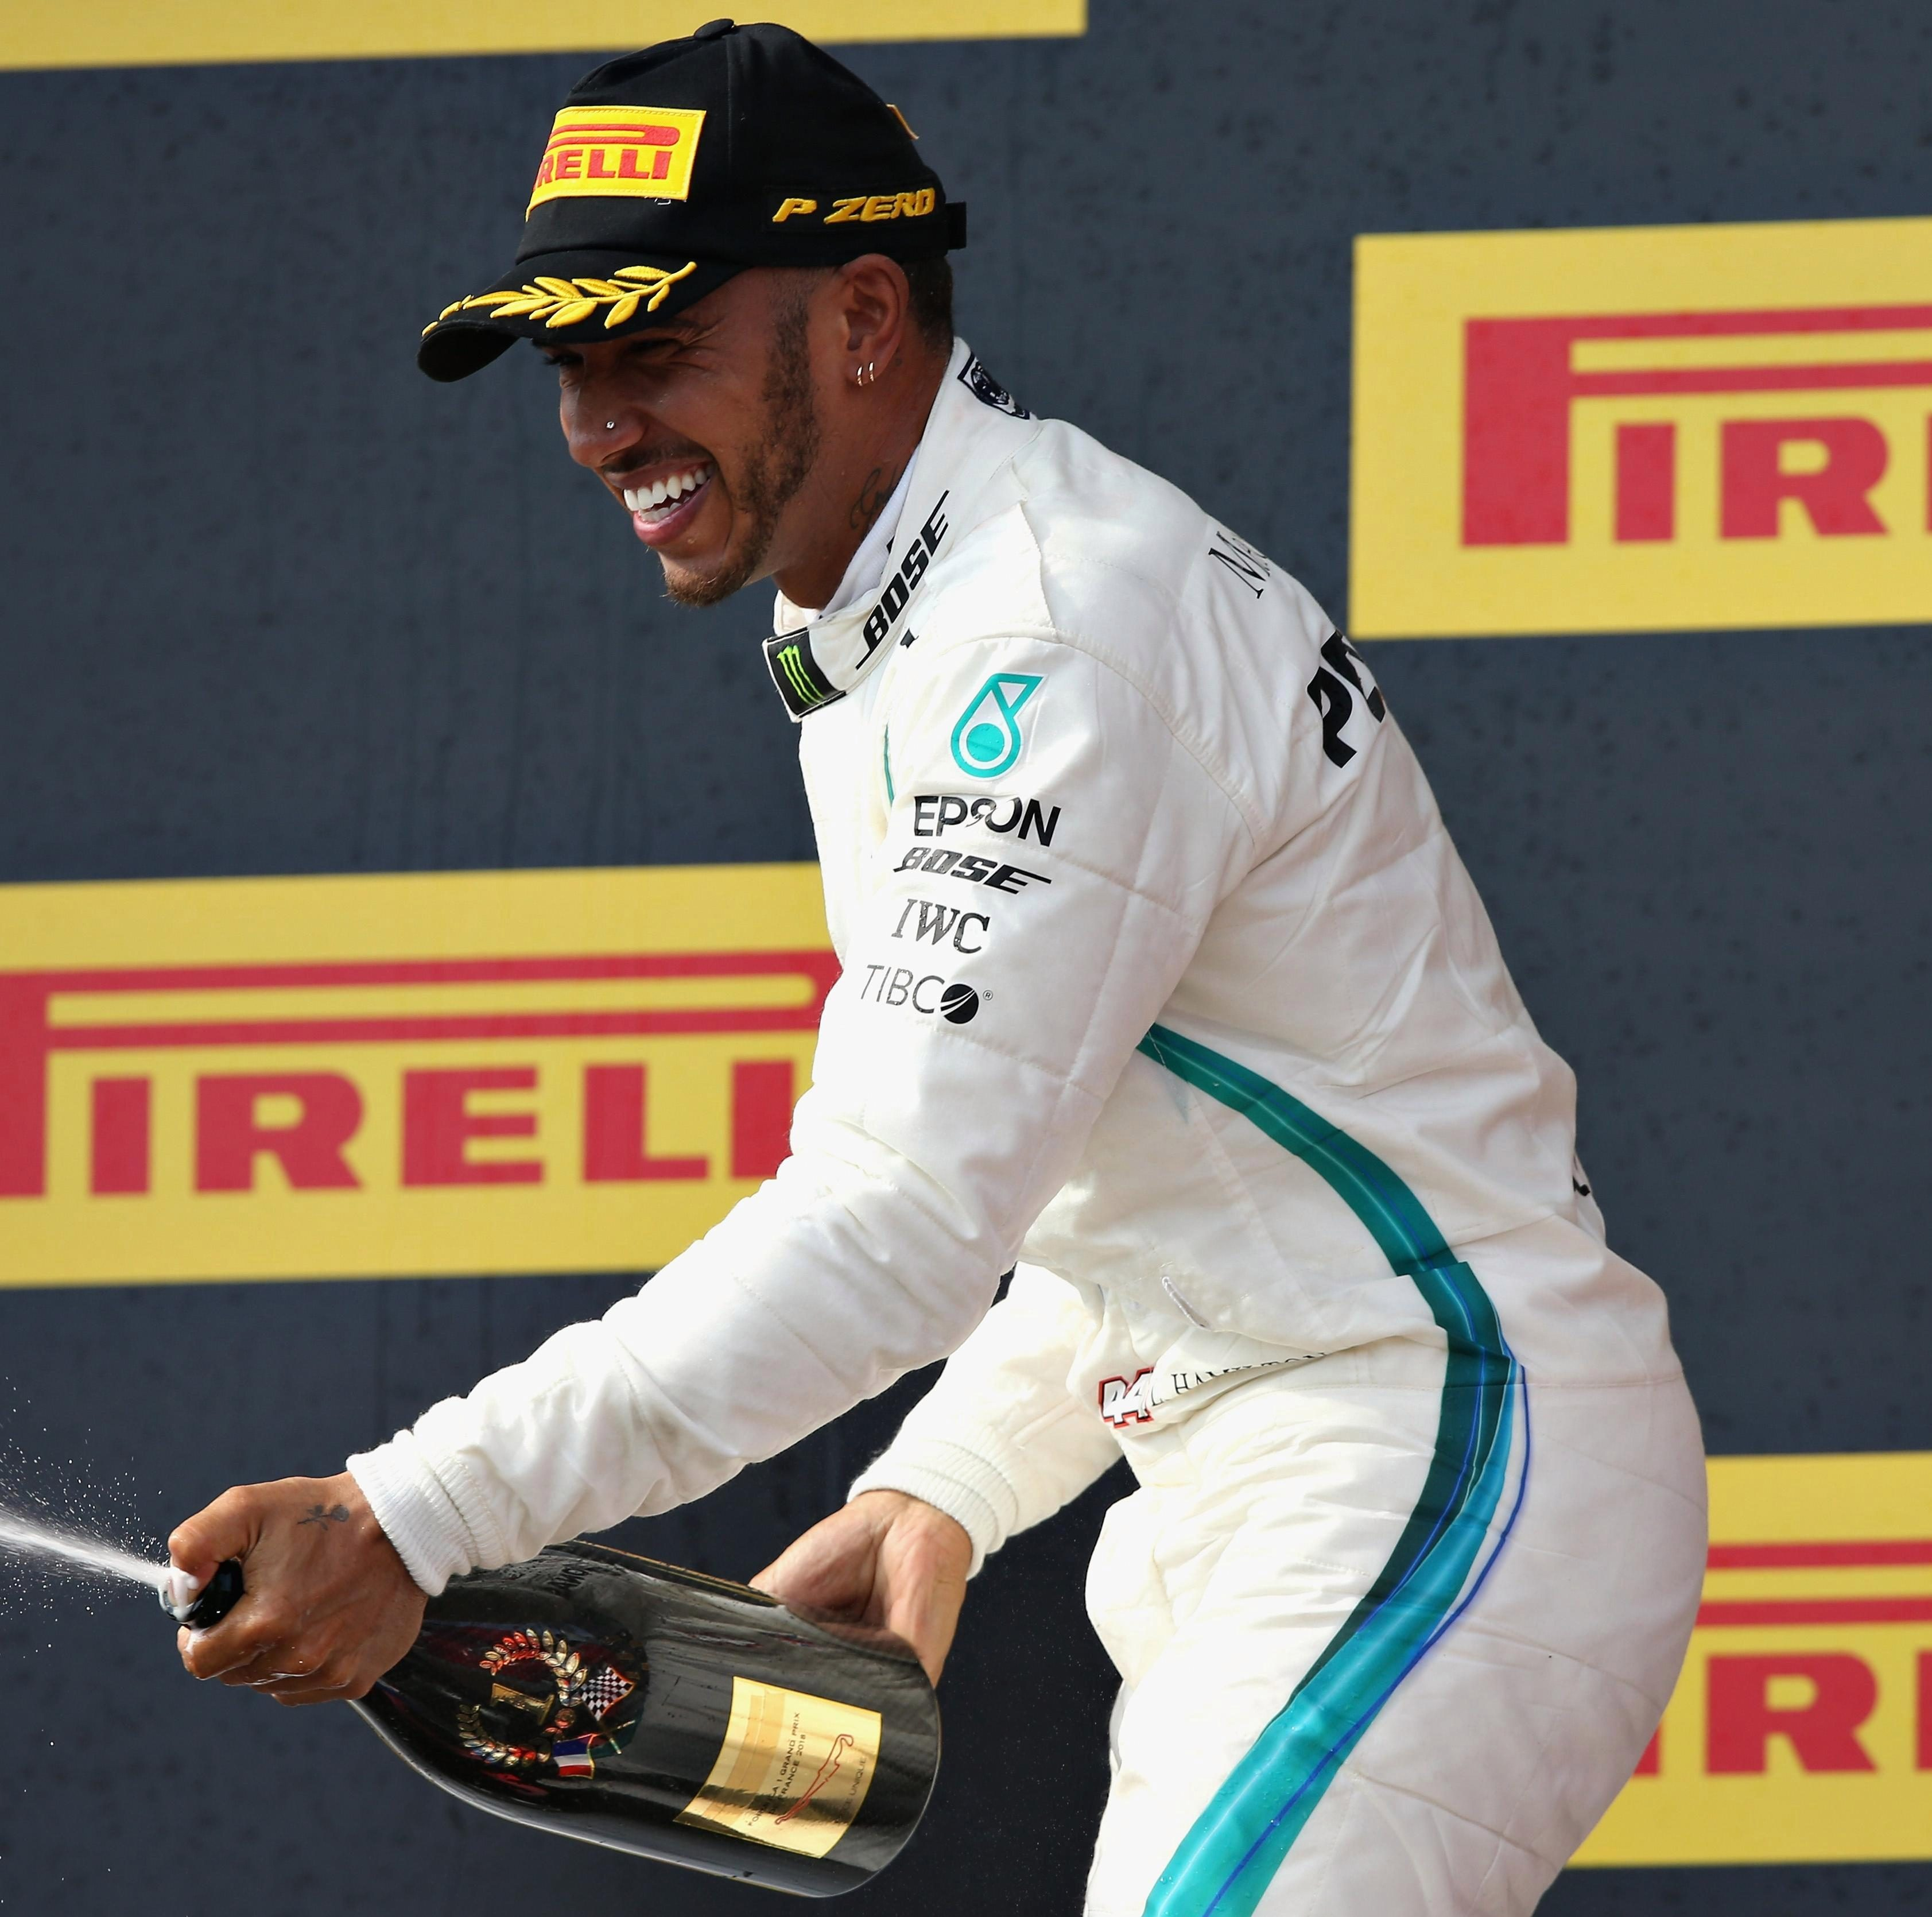 Lewis Hamilton leads the championship after his French GP win on Sunday